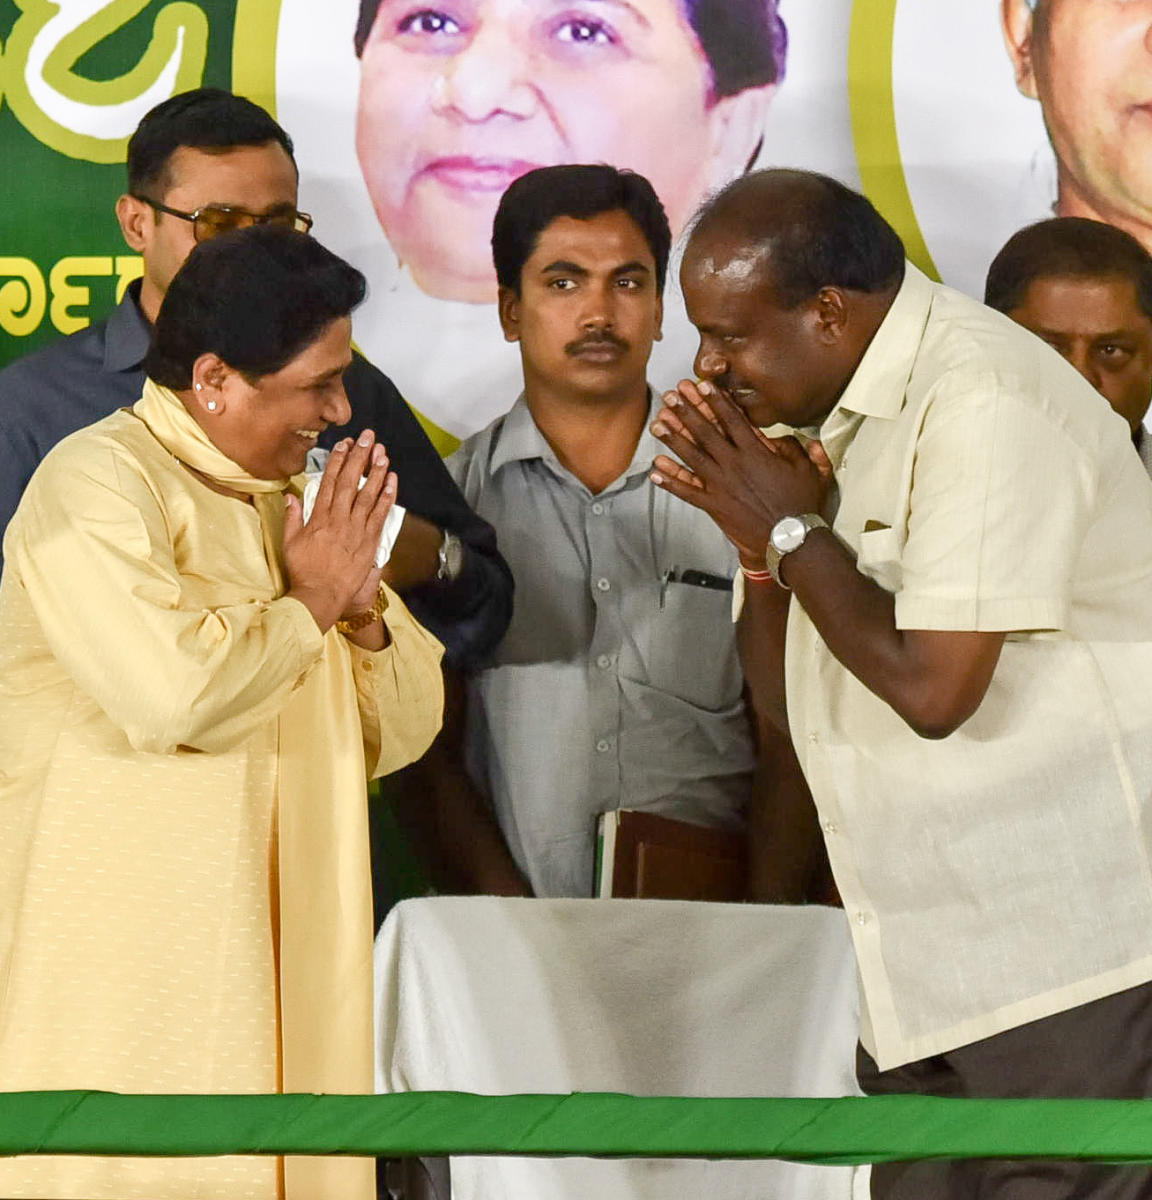 BSP National President Mayawati and JD(S) State President H D Kumarswamy exchanging greeting during the 'Kumara Parva', jointly organised by JS(D) and BSP at Maharaja College Ground in Mysuru on Wednesday.-Photo by Savitha. B R